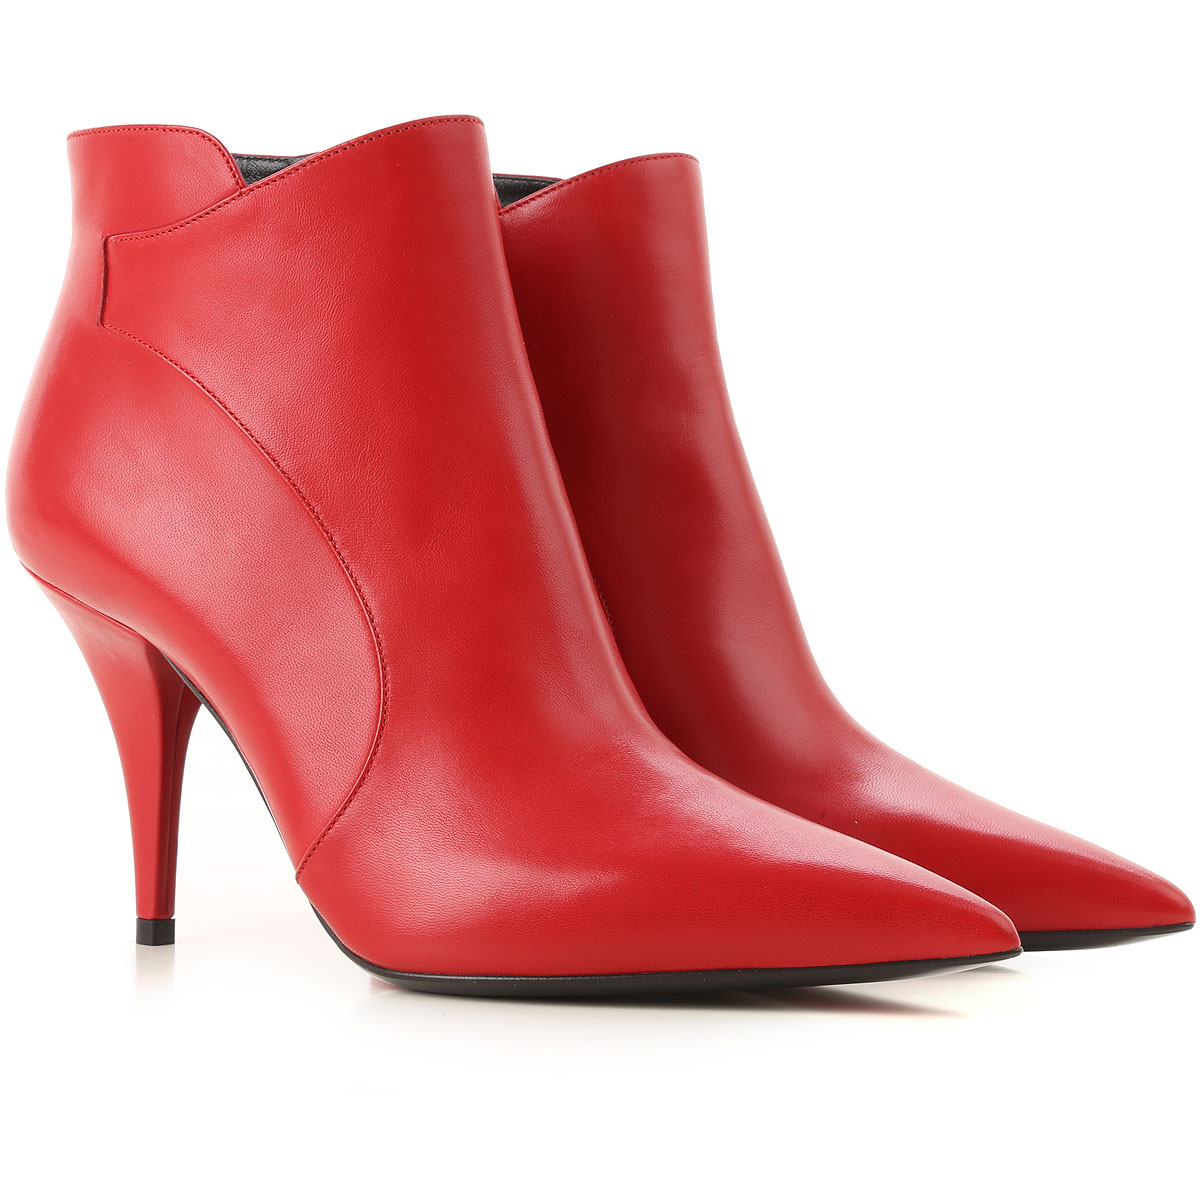 Image of Casadei Boots for Women, Booties, Red, Leather, 2017, 10 6.5 7 8 8.5